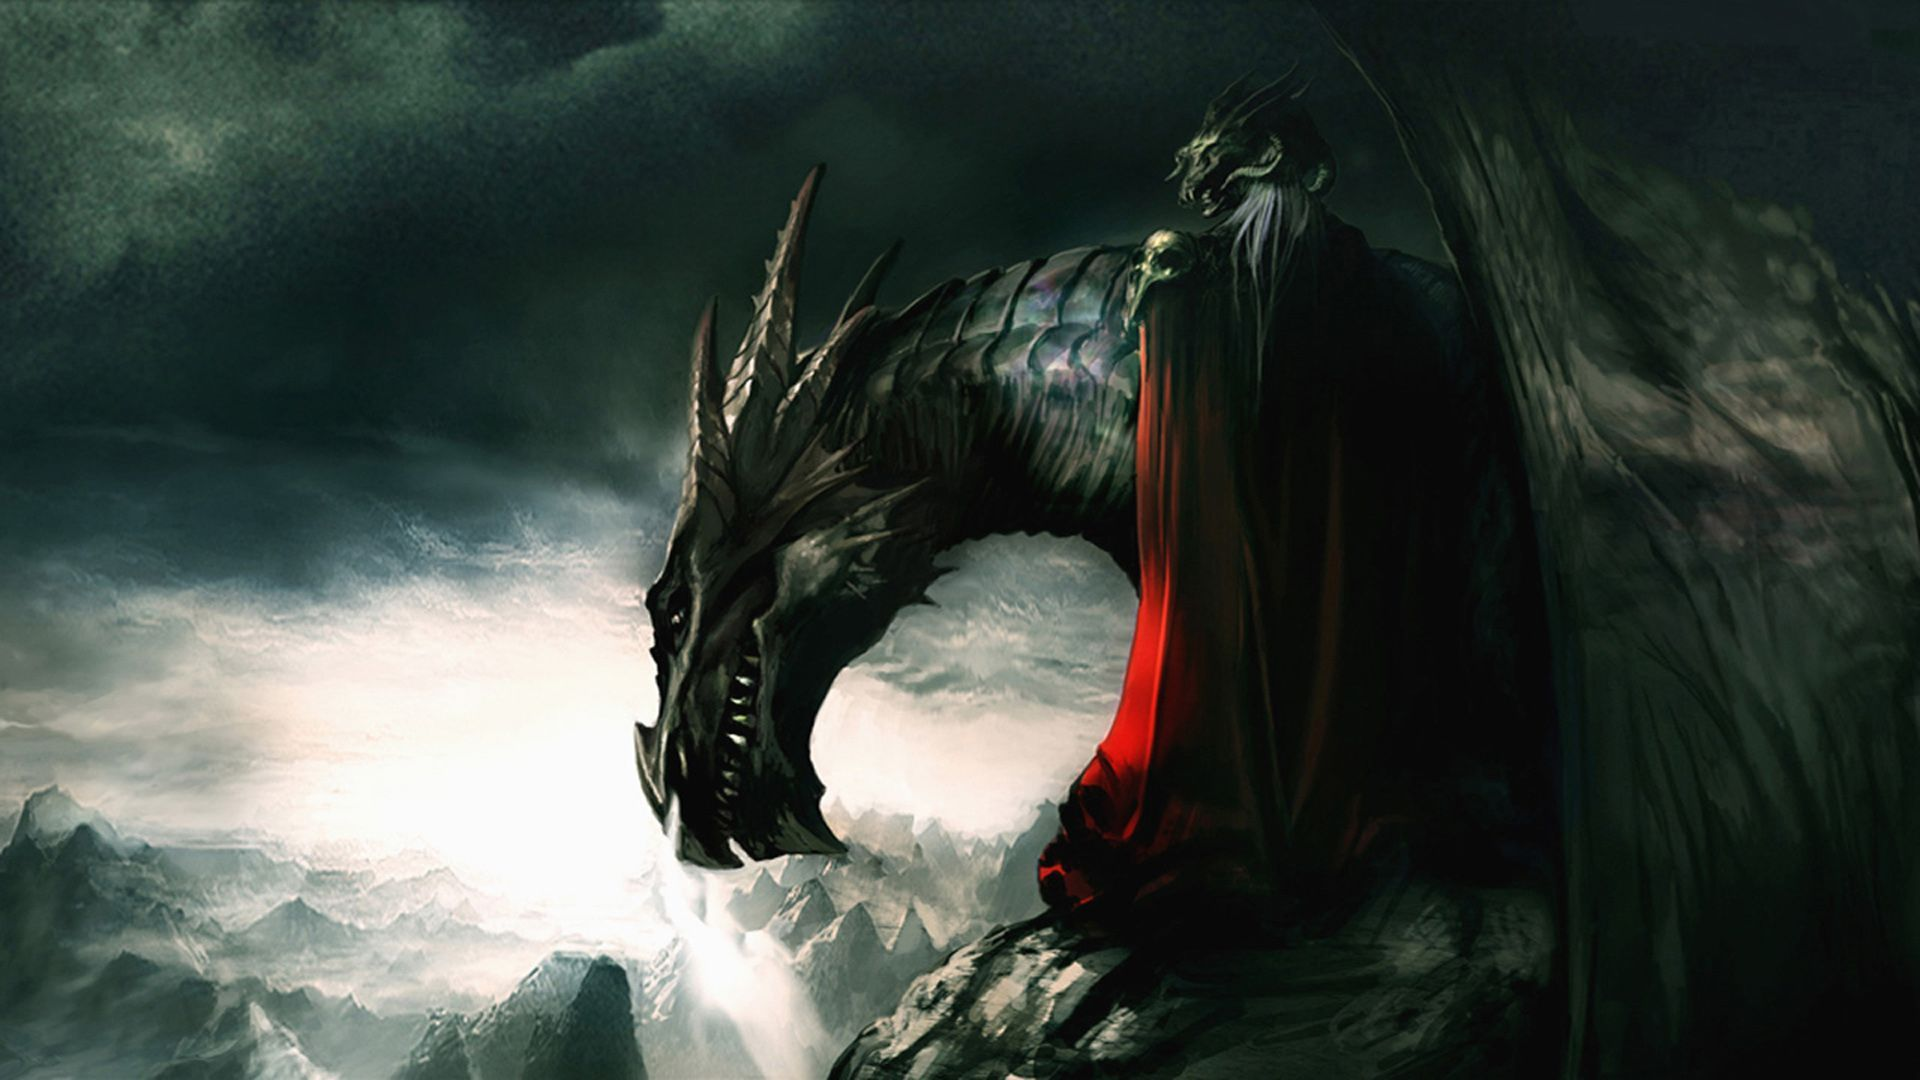 Full hd p dragon wallpapers hd desktop backgrounds 19201080 dragon full hd p dragon wallpapers hd desktop backgrounds 19201080 dragon hd wallpapers 1080p voltagebd Gallery